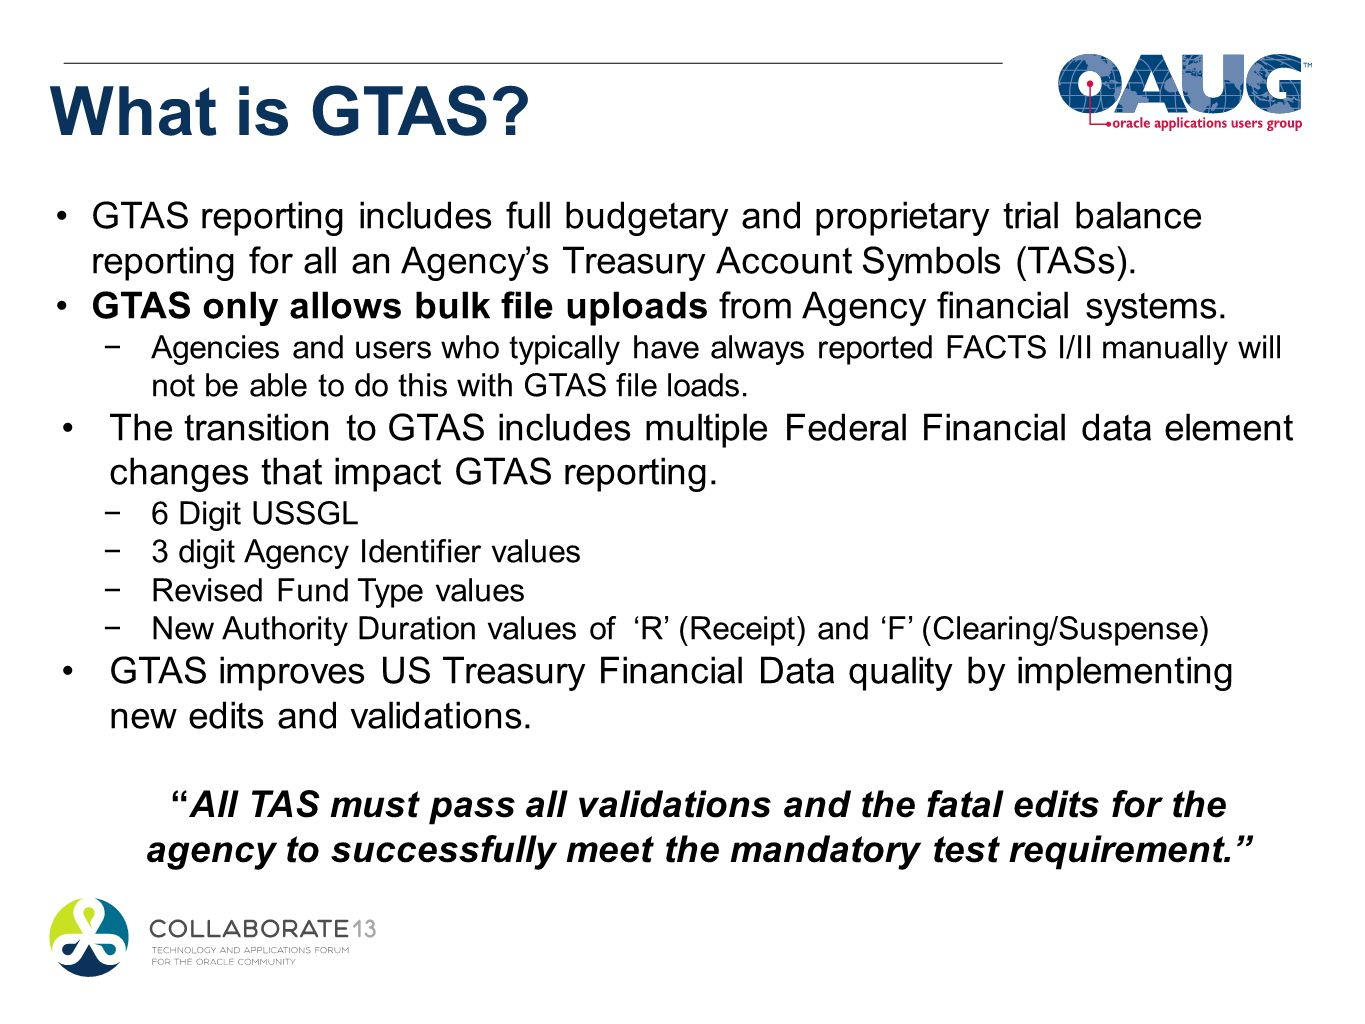 GTAS reporting includes full budgetary and proprietary trial balance reporting for all an Agencys Treasury Account Symbols (TASs). GTAS only allows bu